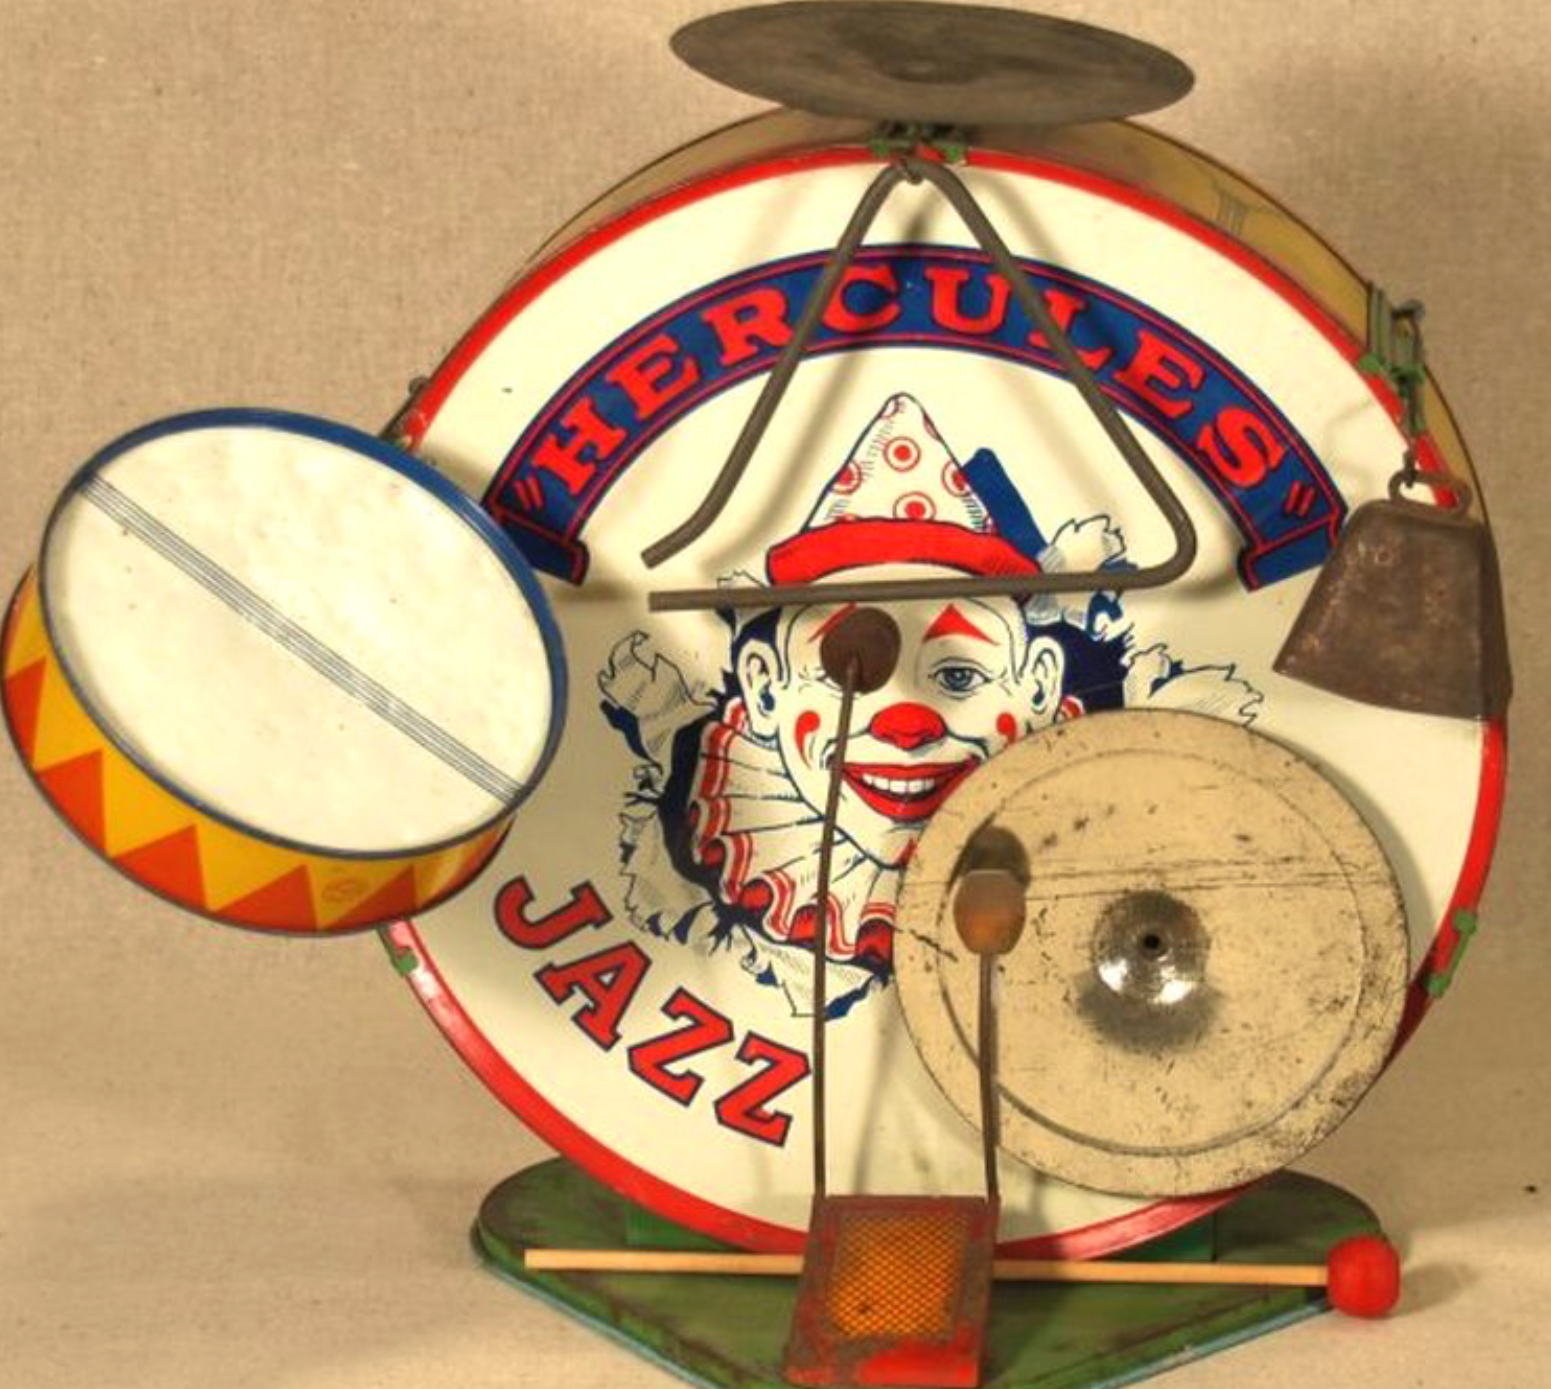 Vintage Toy Drum Kits. Be the coolest kid on the block. | Gary Rocks ...